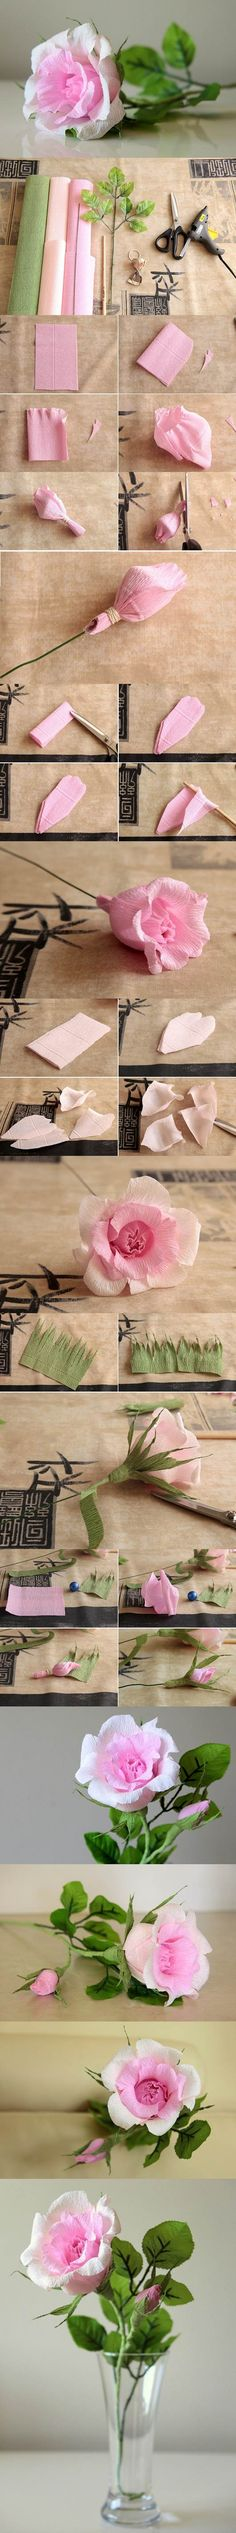 DIY Crepe Paper Rose